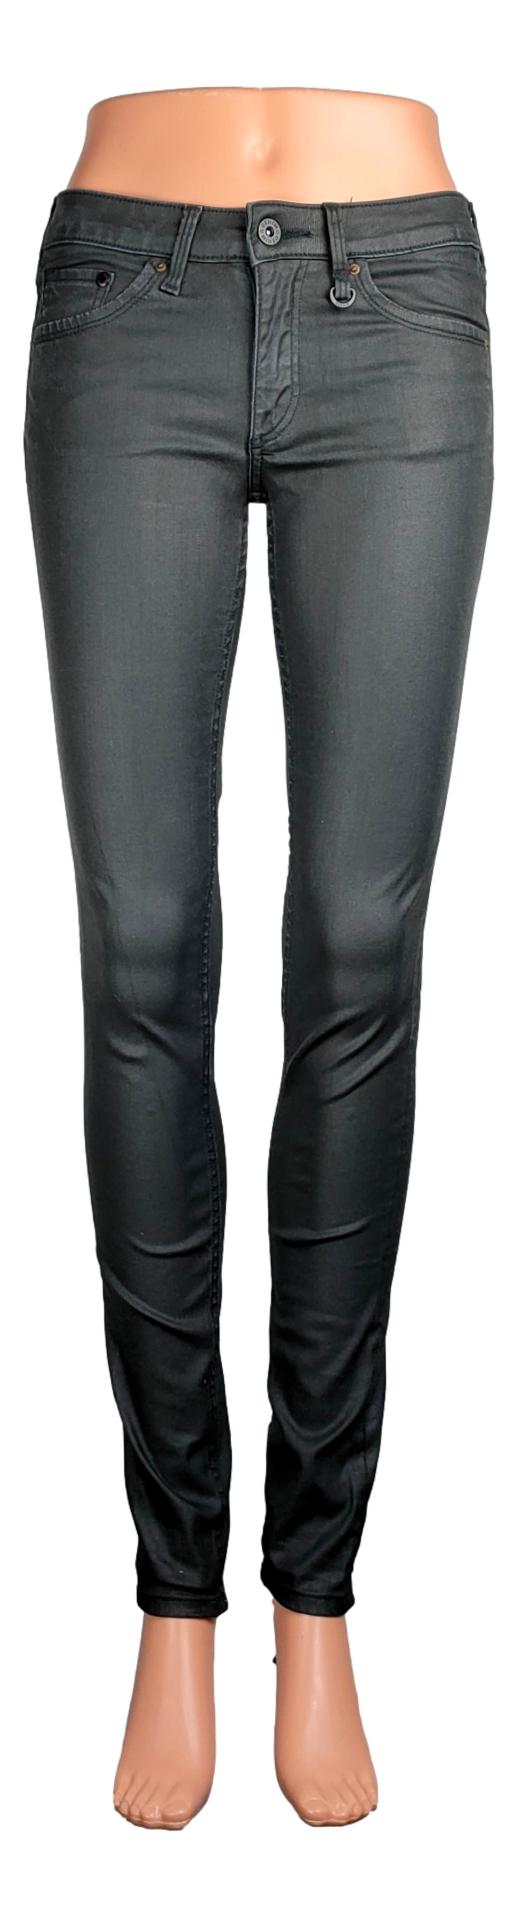 Jean H&M - Taille 34